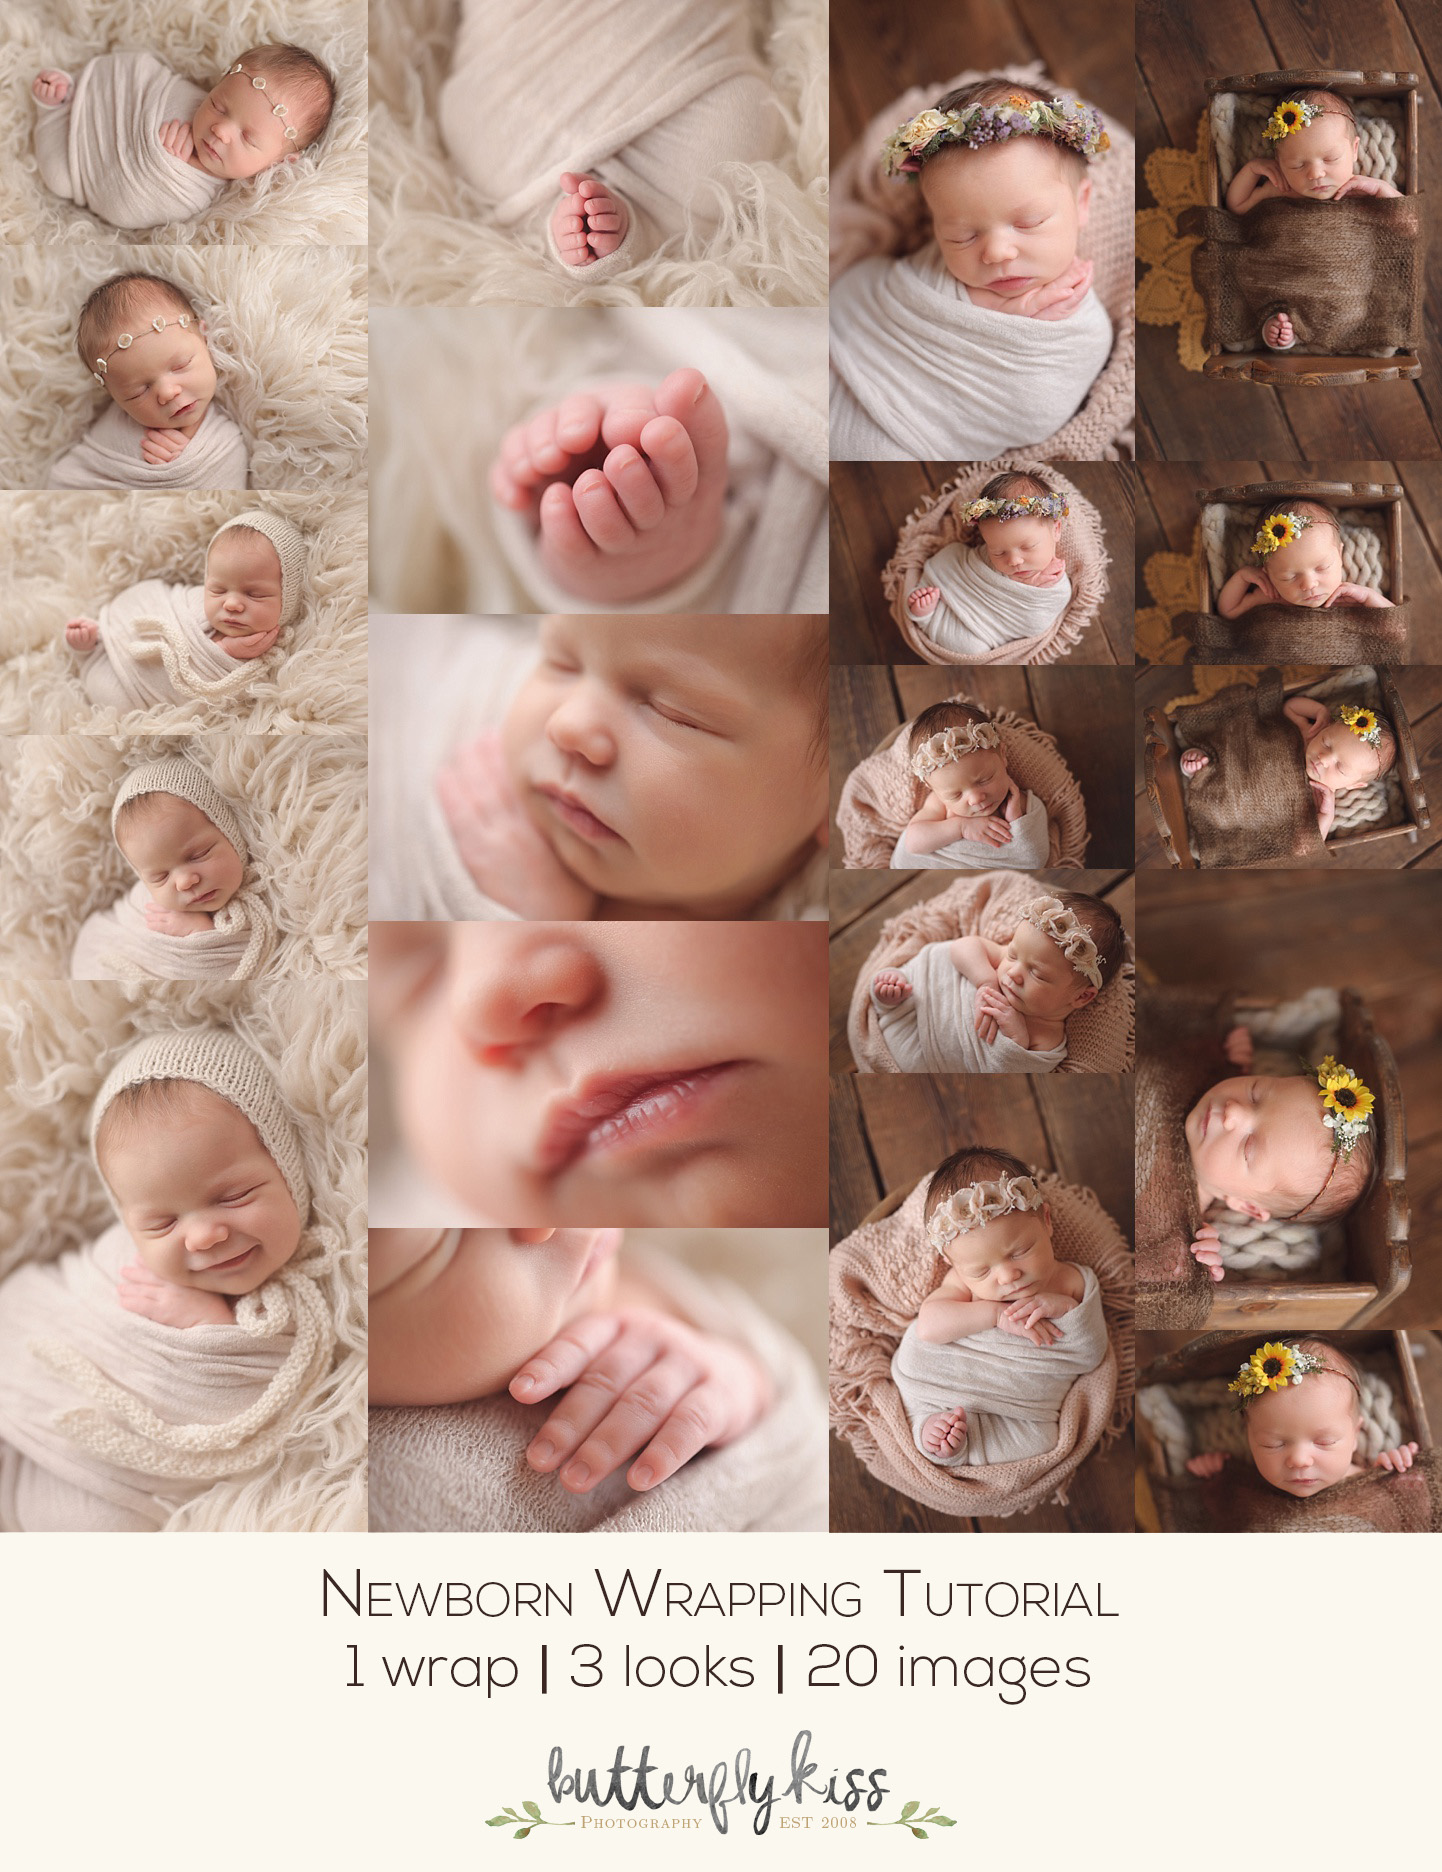 I really hope that this newborn wrap tutorial helps you in your newborn photography i would love to know if youve tried this out